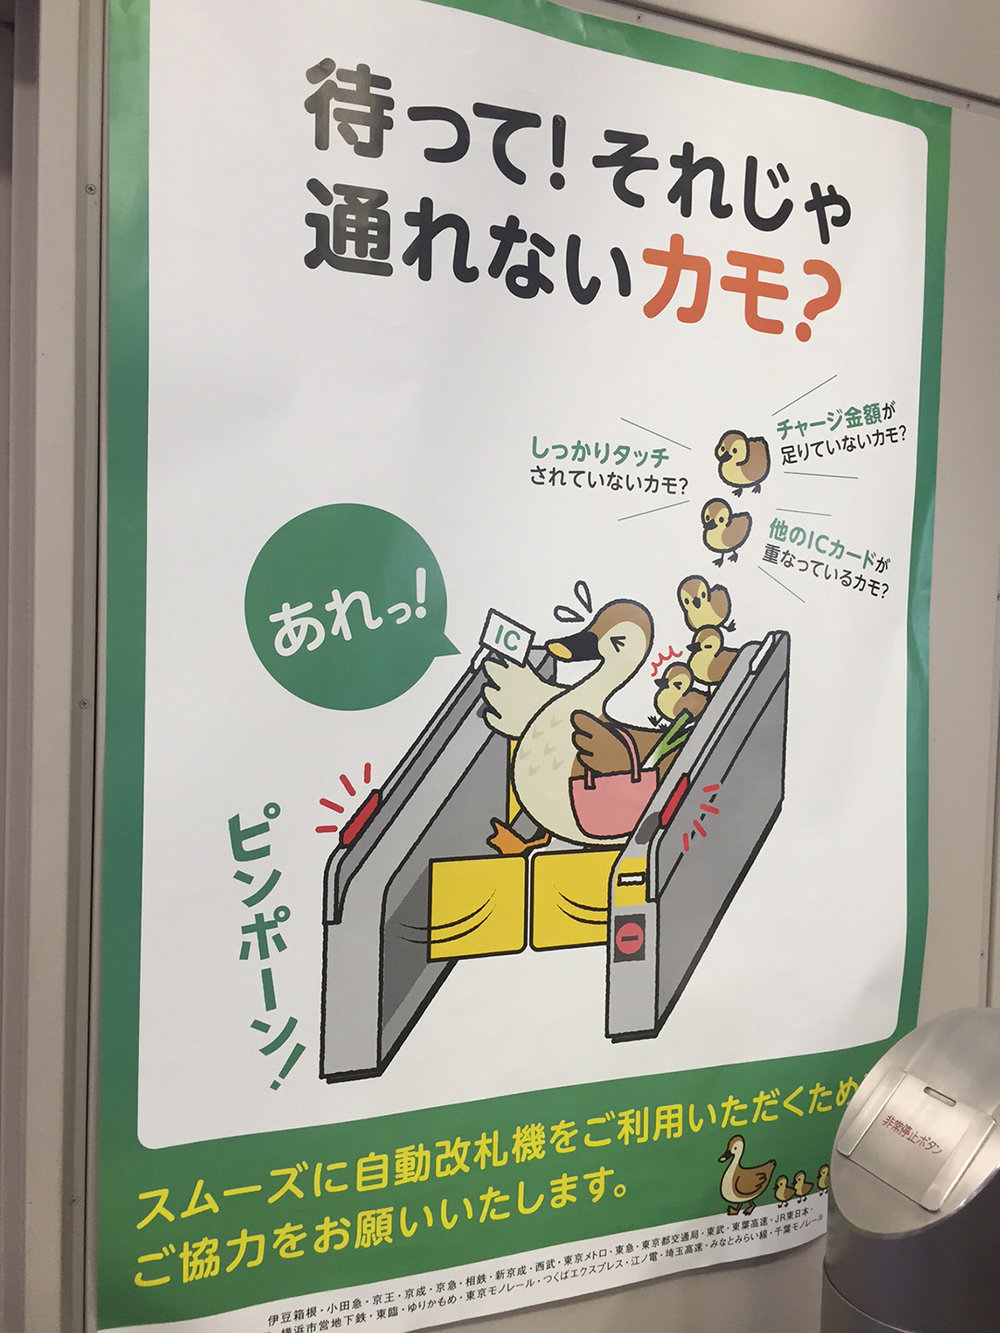 subway duck.JPG